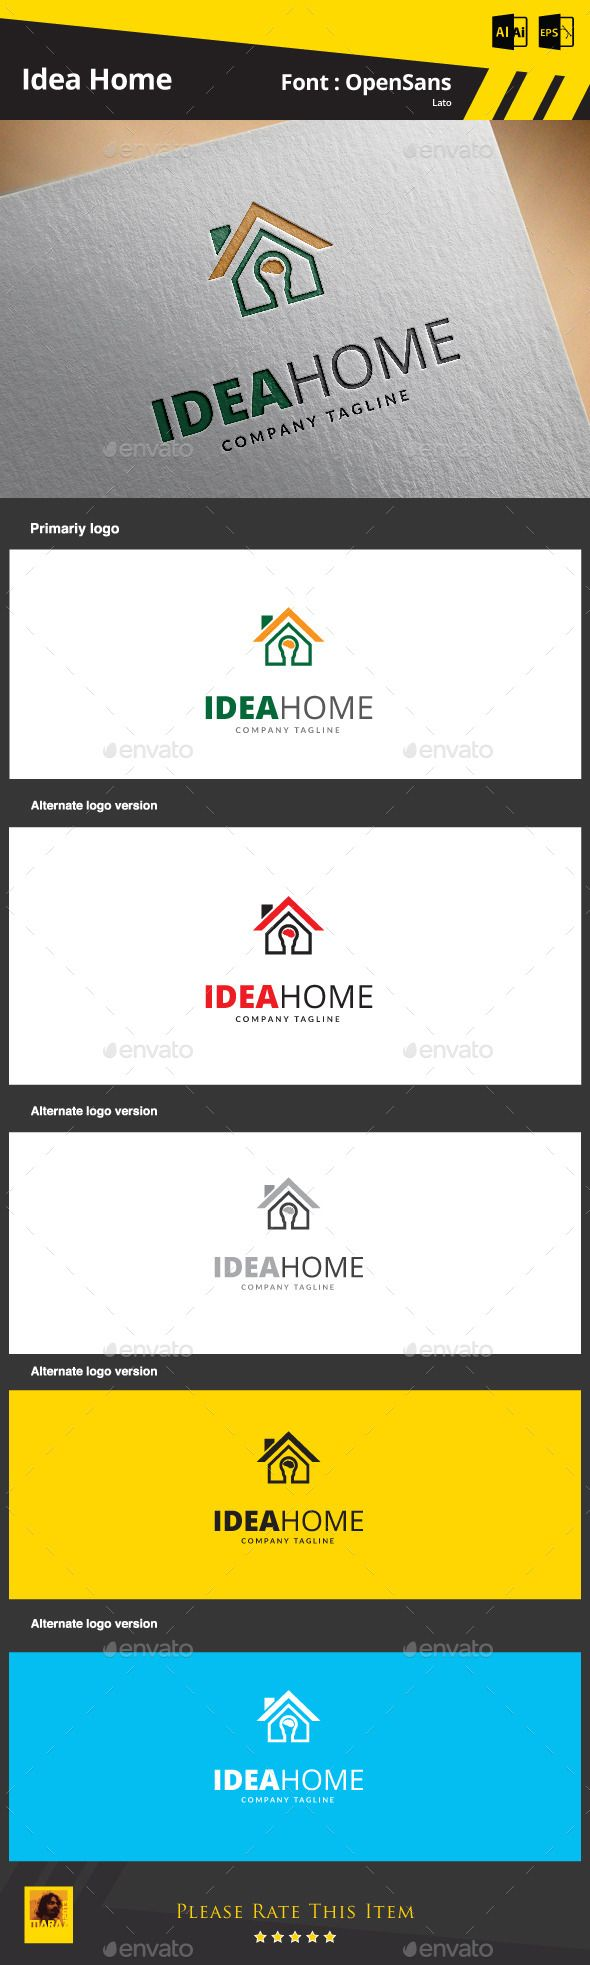 Idea Home Logo Template — AI Illustrator #housing #smart • Available here → https://graphicriver.net/item/idea-home-logo-template/9275233?ref=pxcr